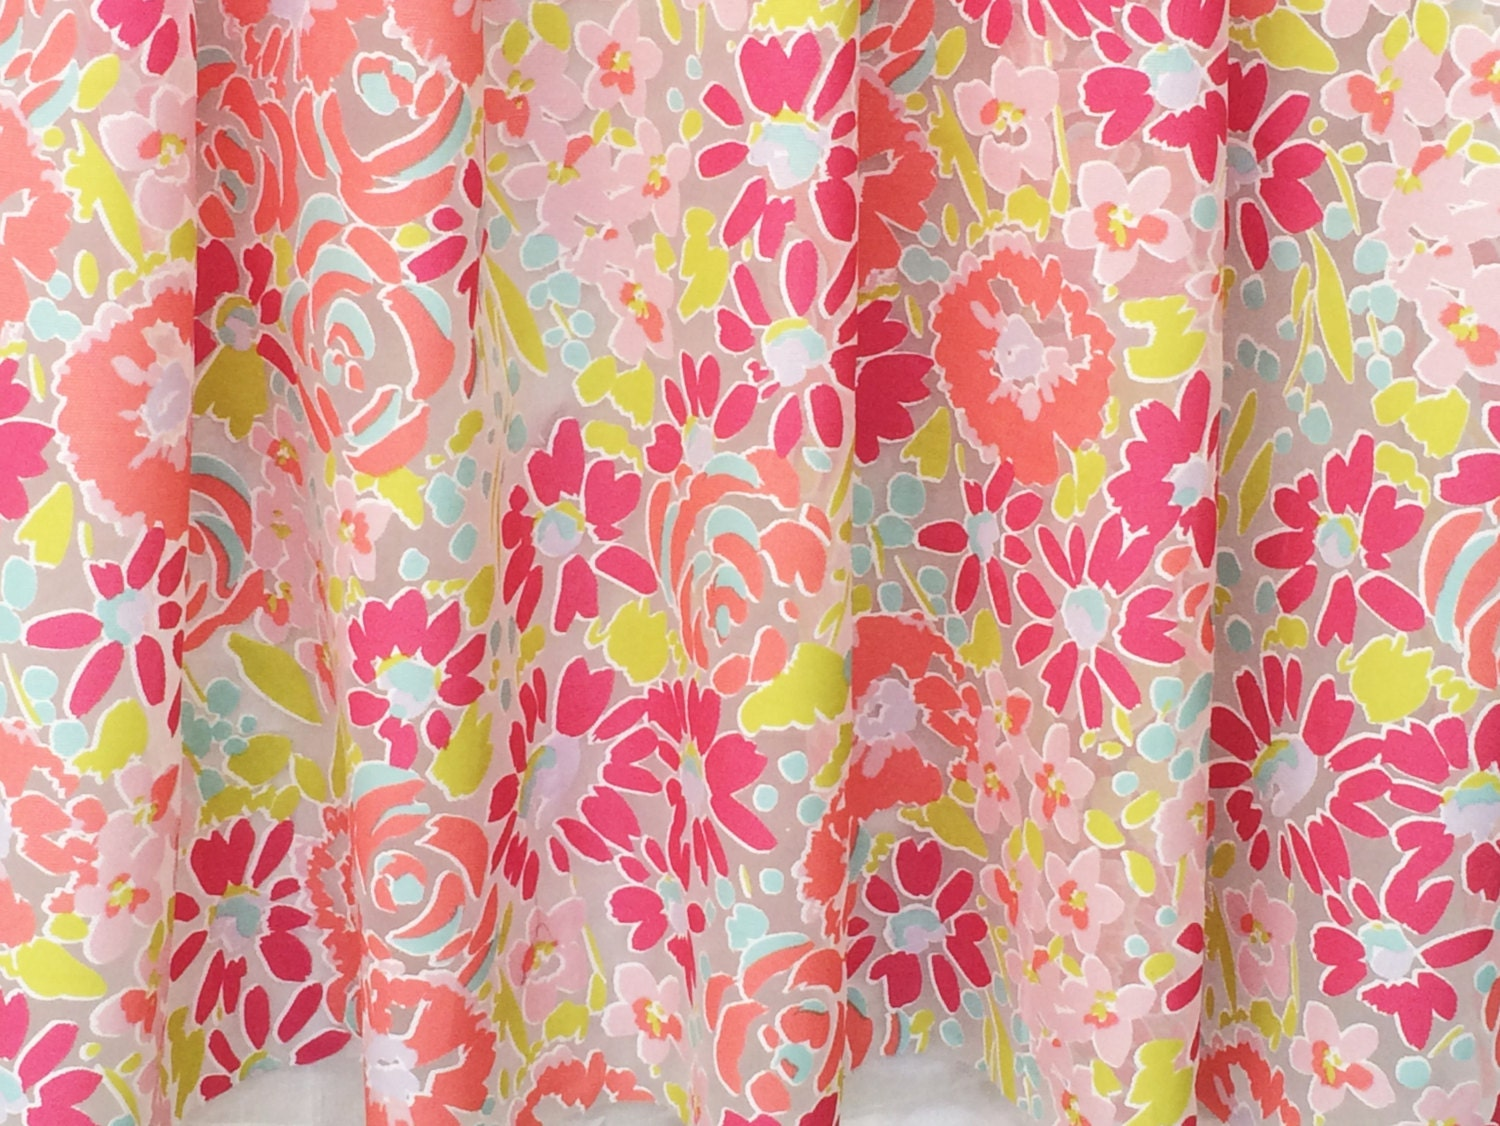 Pink blooming flowers sheer curtain fabric by the yard for Kids drapery fabric